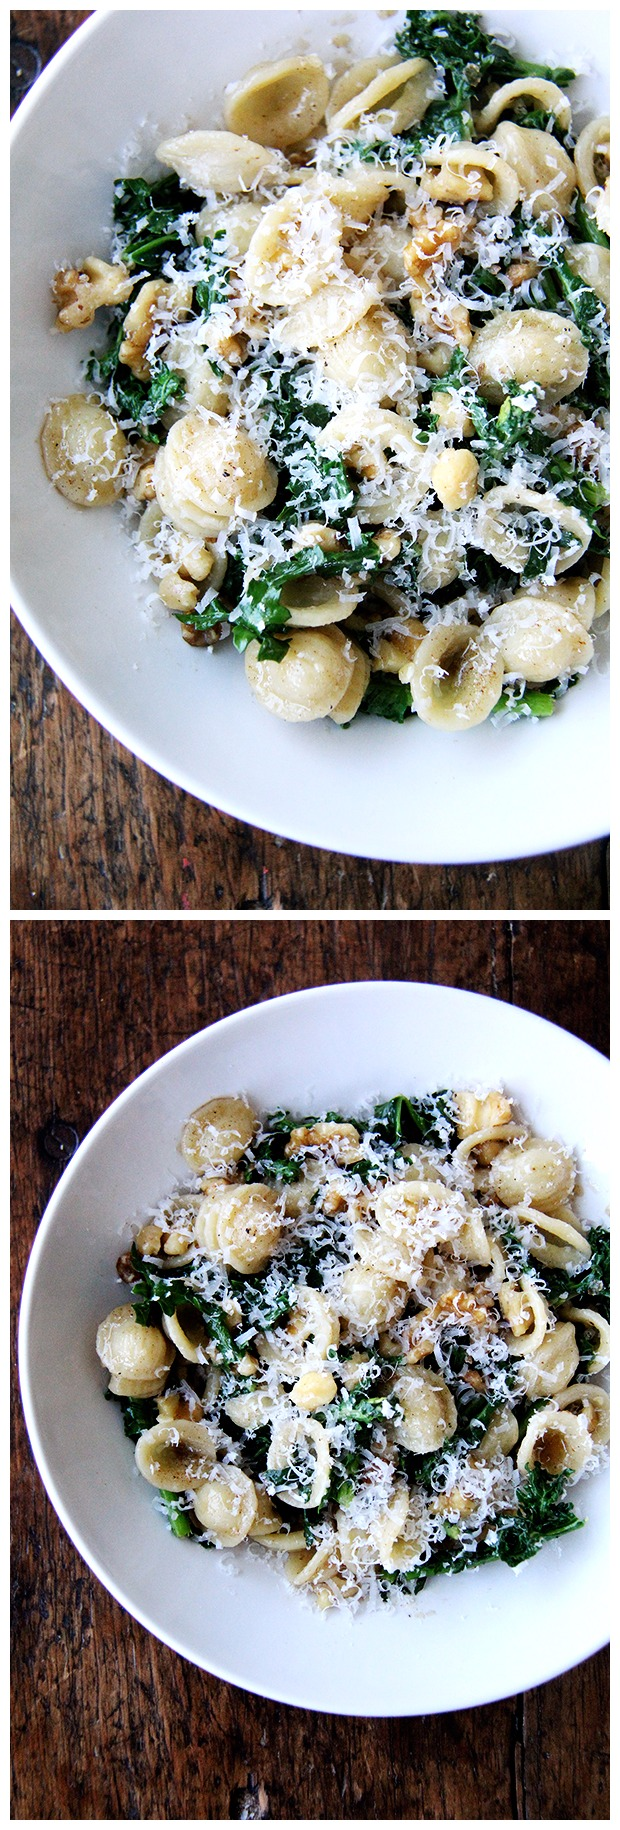 Orecchiette with Spring Greens, Walnuts and Brown Butter